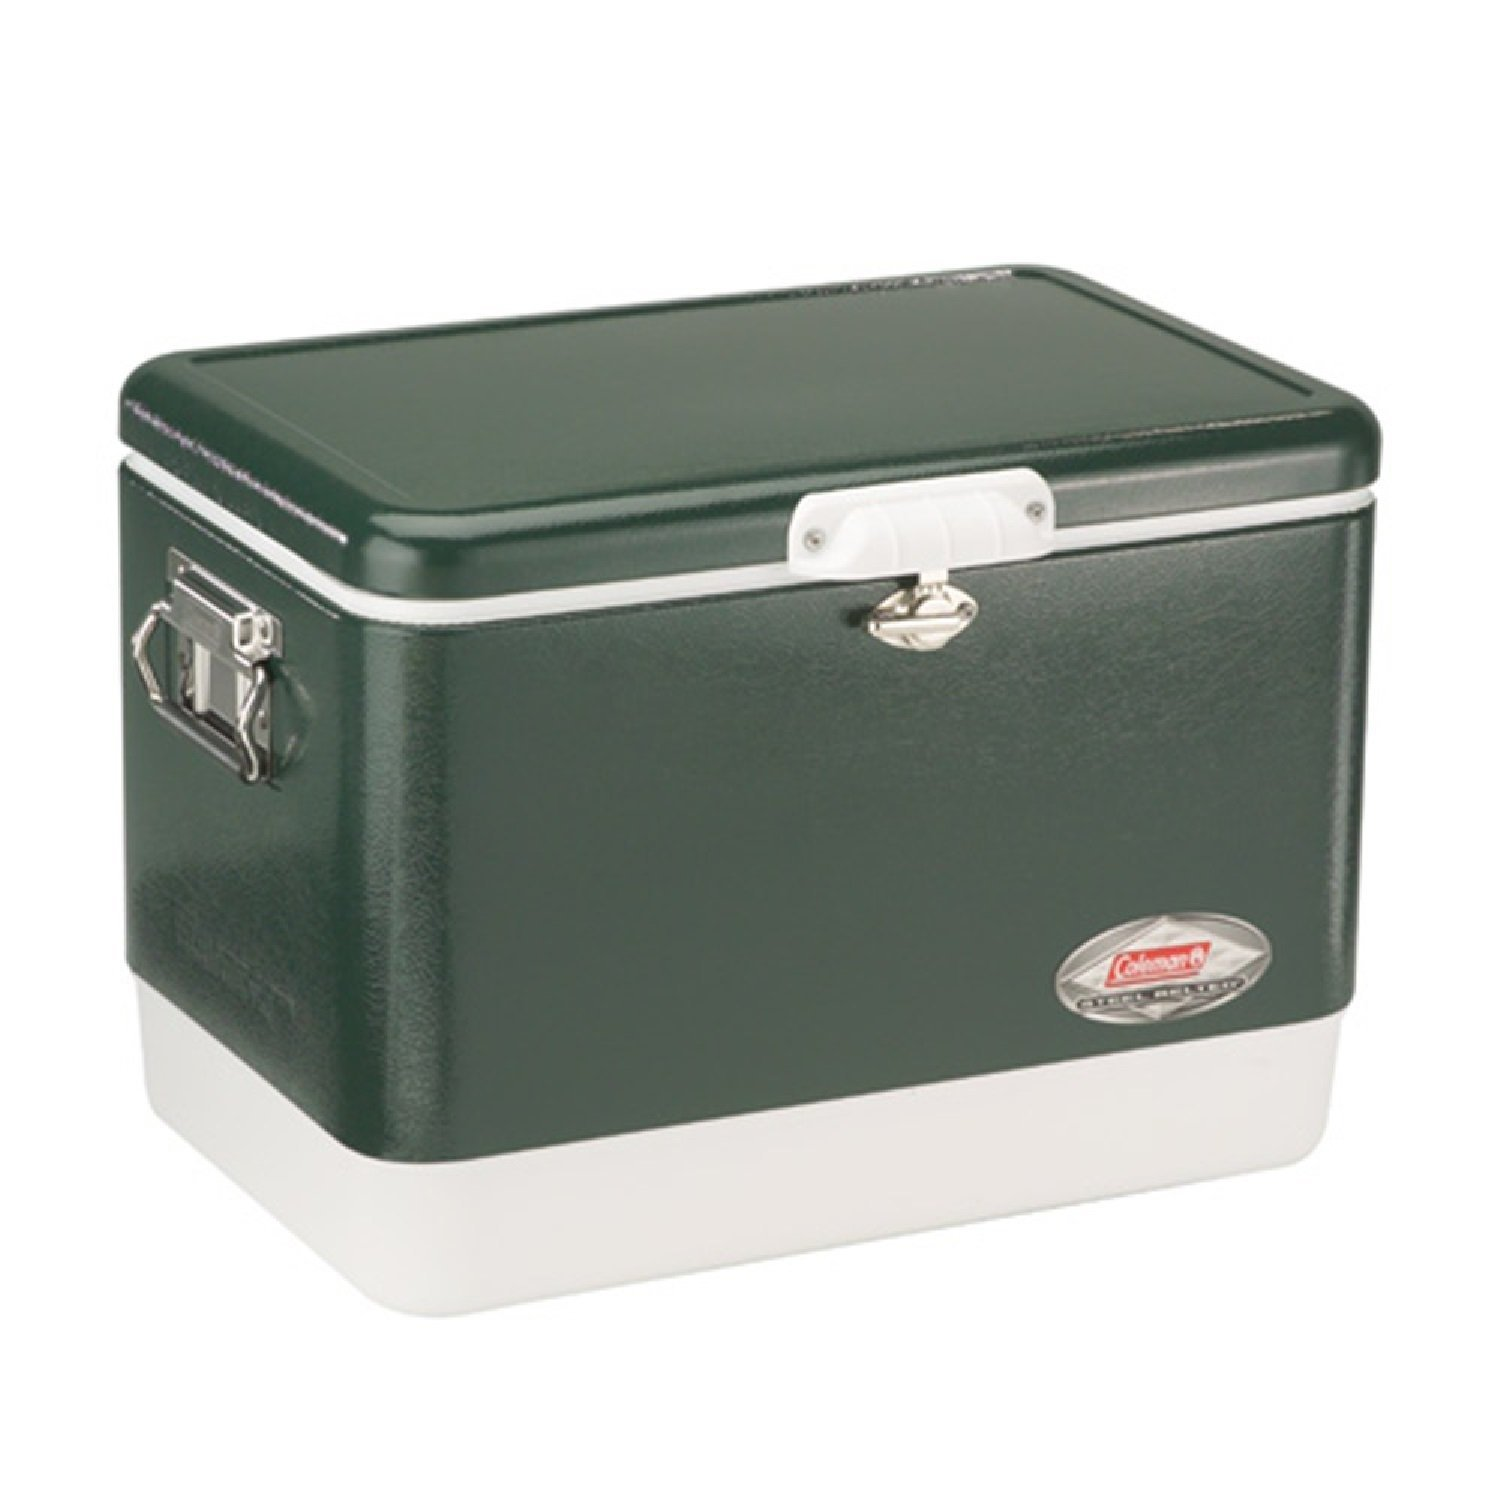 Coleman 54-Quart Steel-Belted Cooler